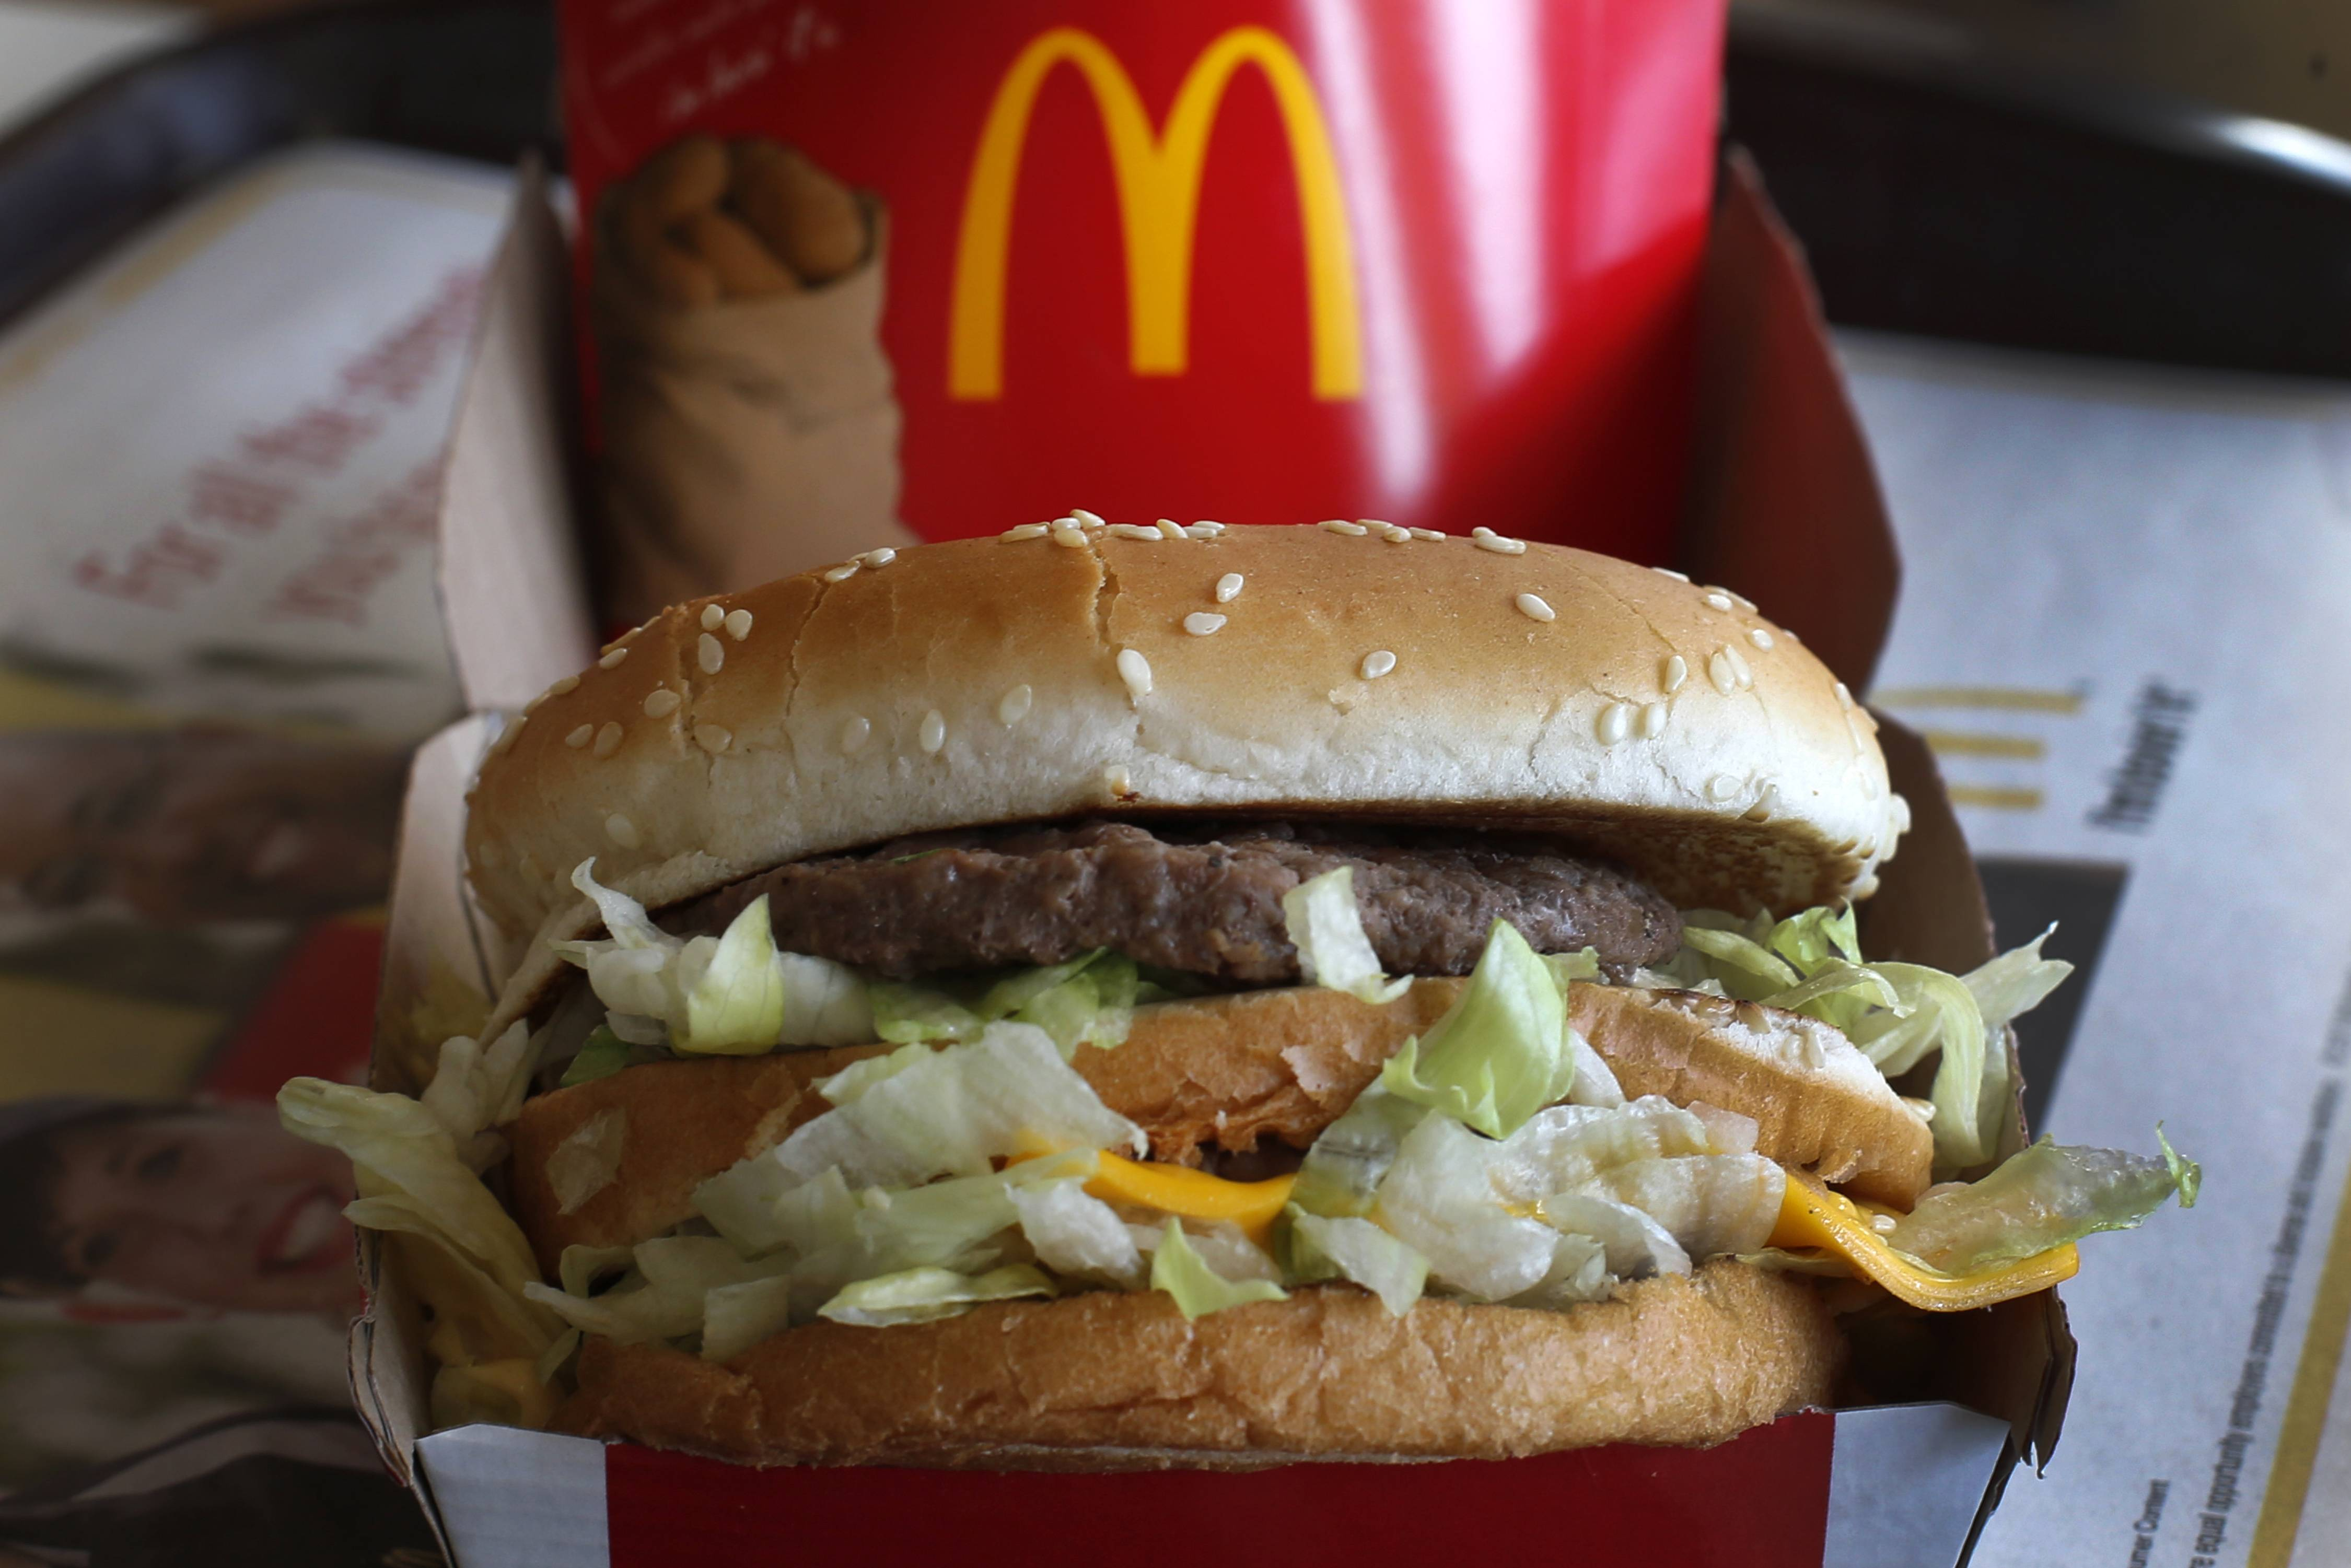 Several lawsuits being filed against McDonald's say the fast-food chain engages in a variety of practices to avoid paying workers what they're owed. A McDonald's Big Mac sandwich is seen here.